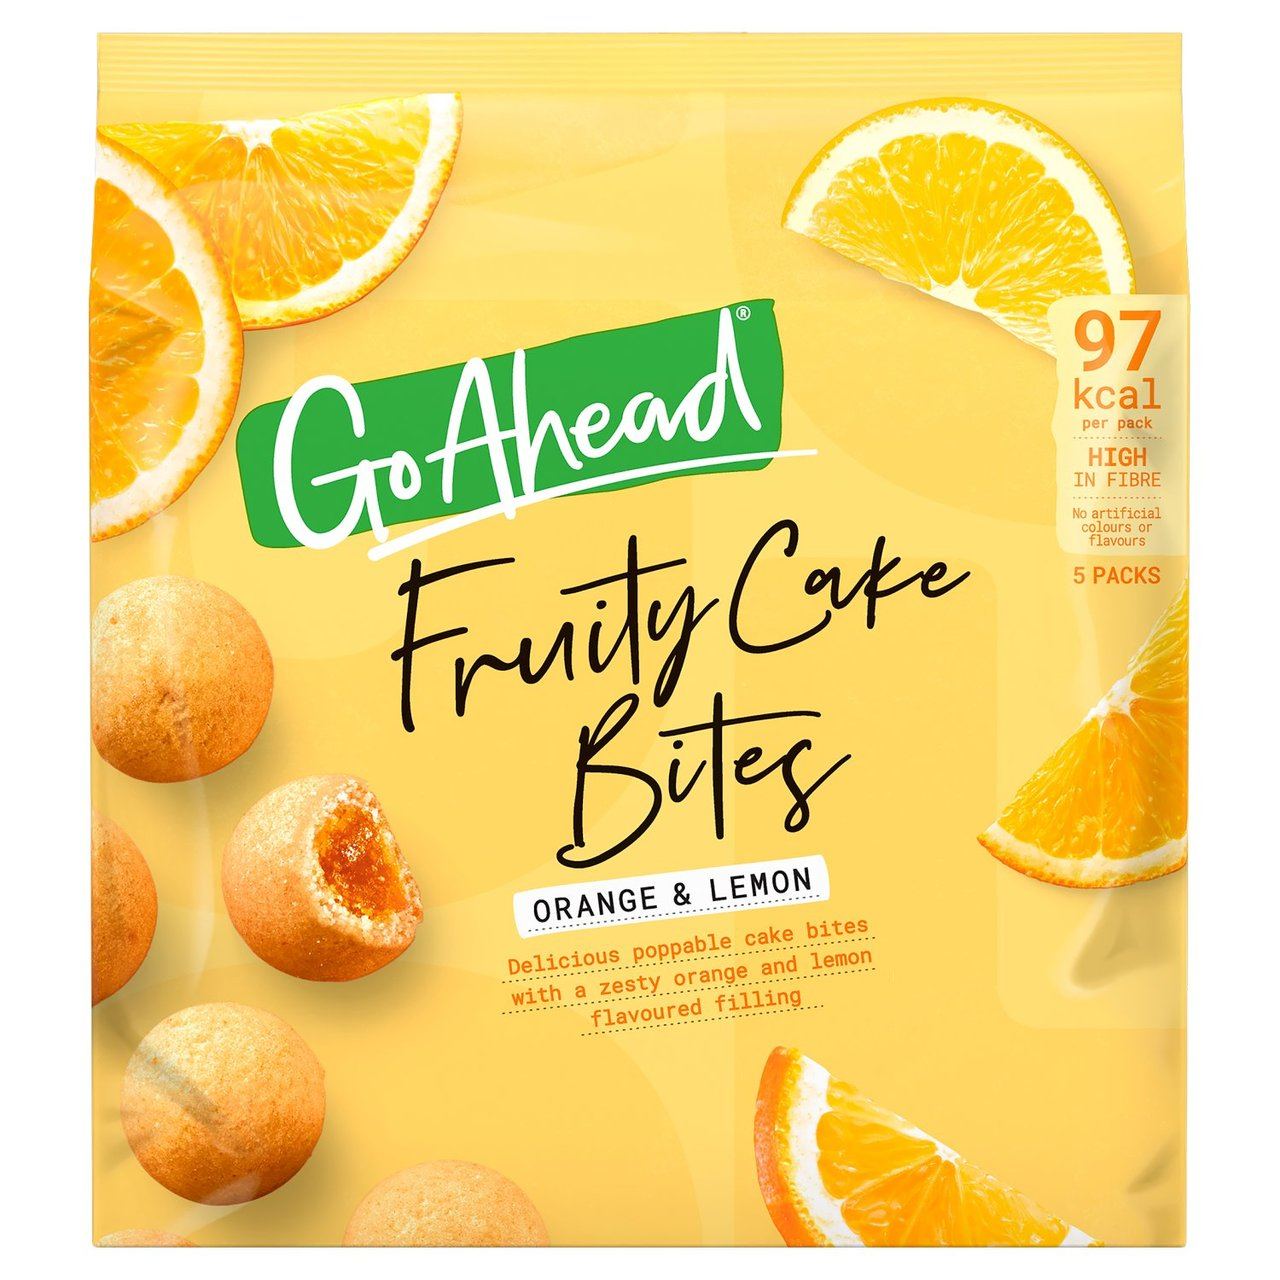 Why spend £2 for a box of five Go Ahead fruity cake bites at Morrisons, when you can get them for 75p less at Asda